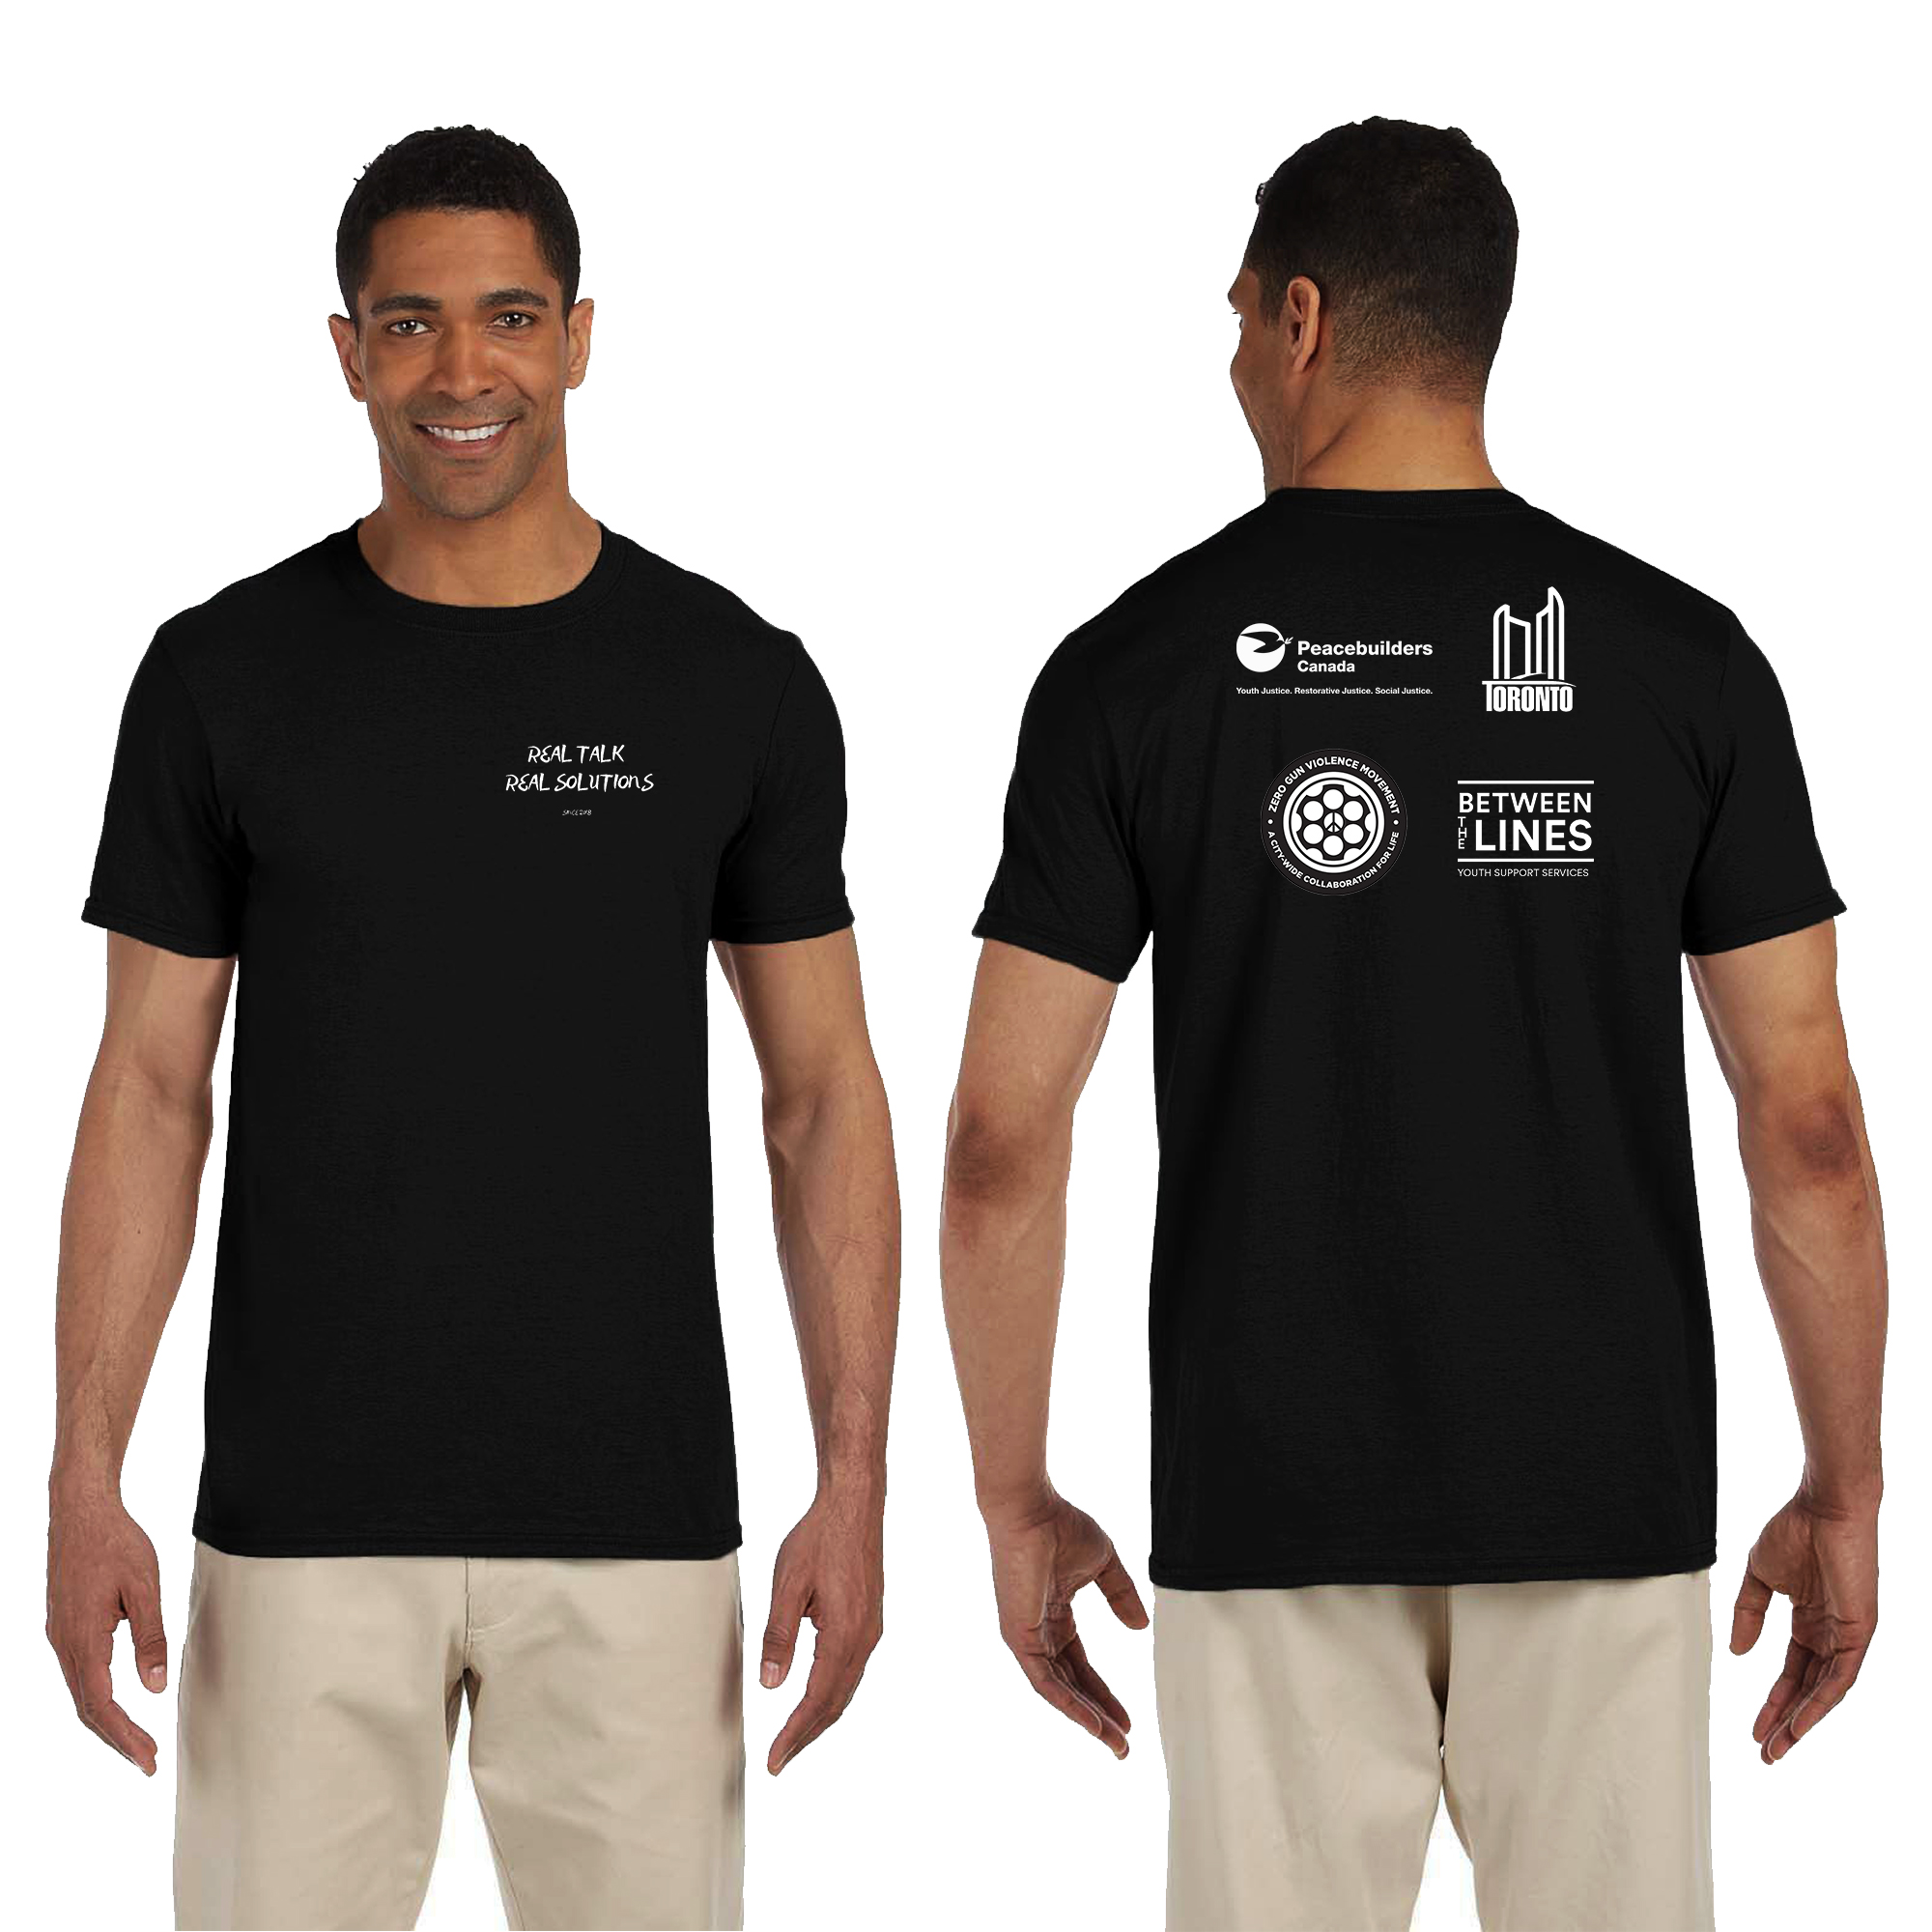 Peacebuilders Adult T-Shirt Mockup & Template